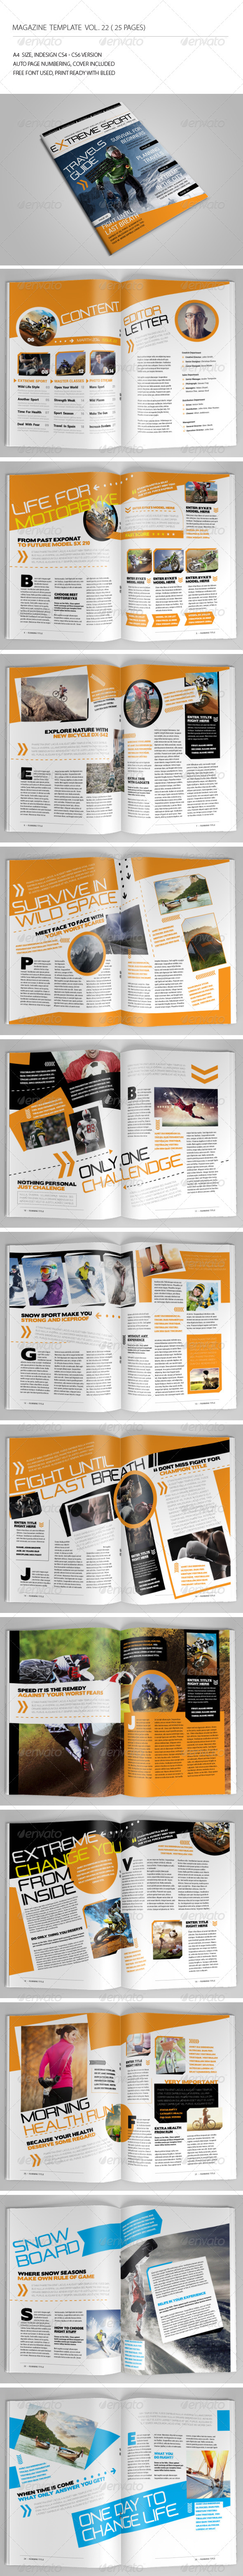 25 Pages Sport Magazine Vol22 - Magazines Print Templates